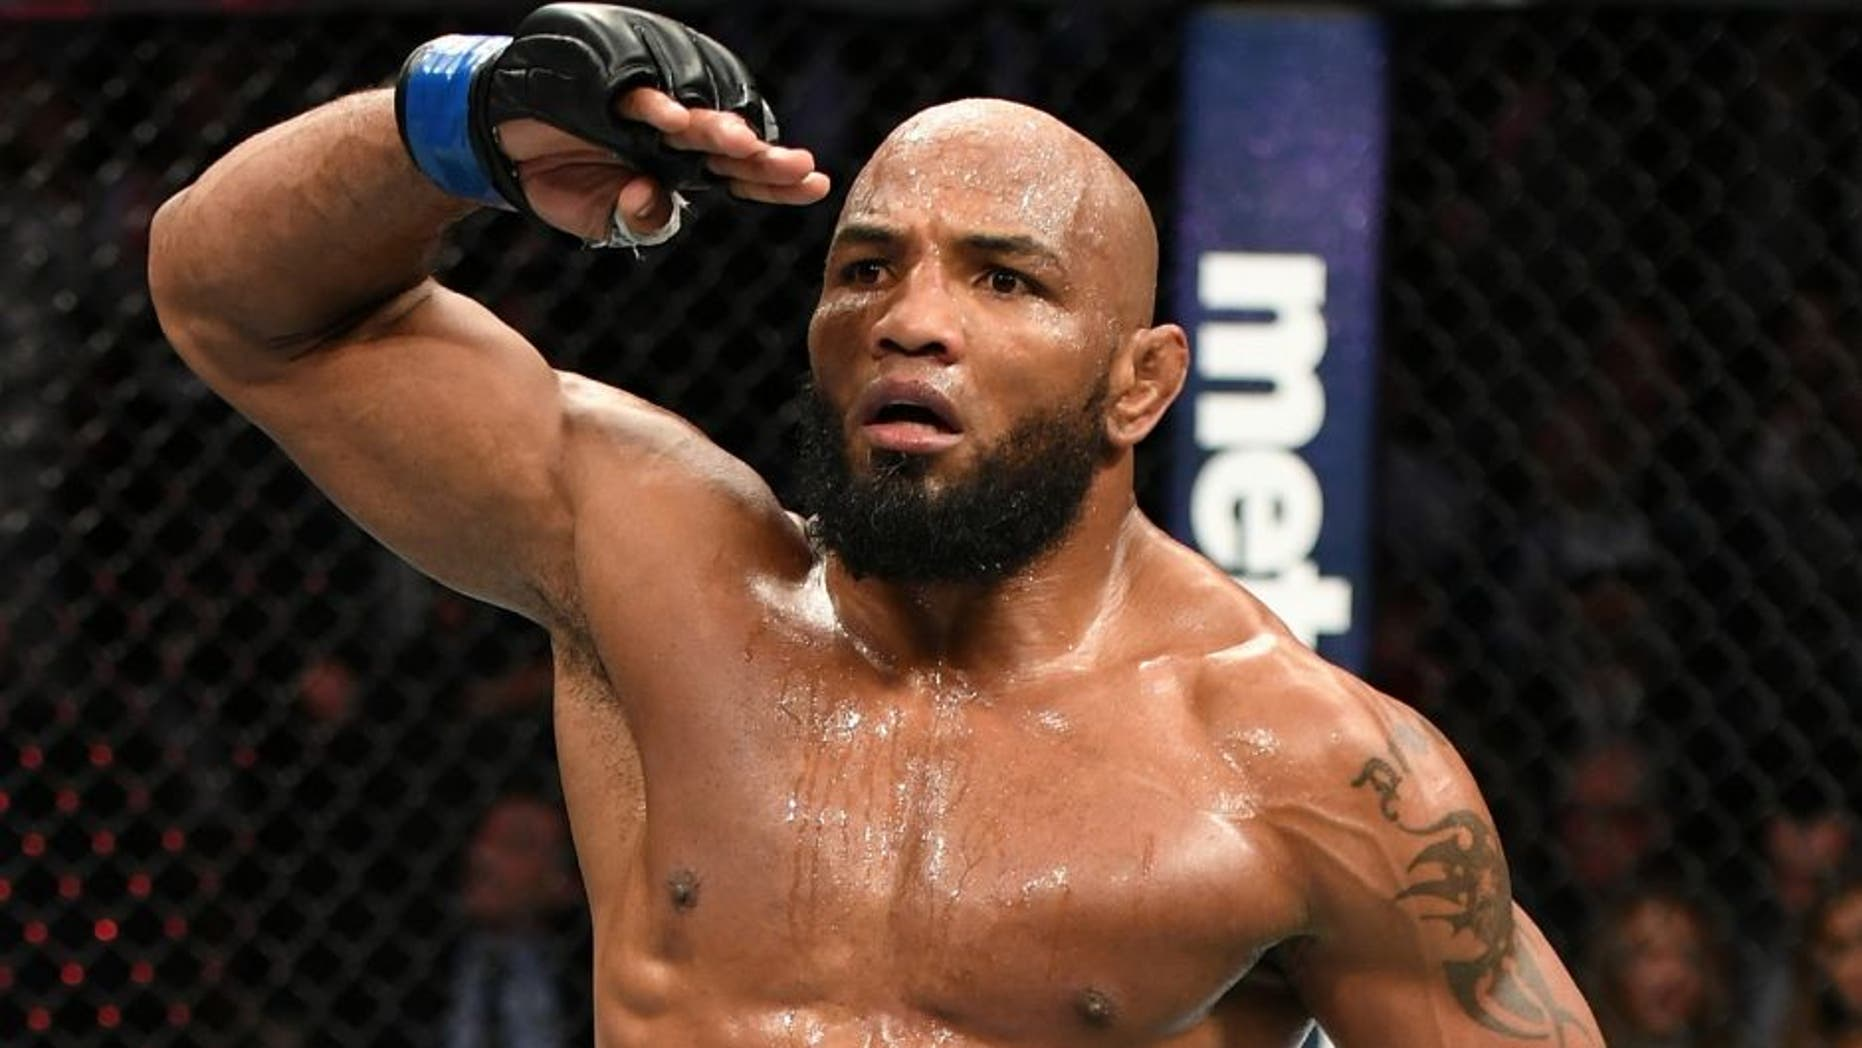 NEW YORK, NY - NOVEMBER 12: Yoel Romero of Cuba reacts against Chris Weidman of the United States (not pictured) in their middleweight bout during the UFC 205 event at Madison Square Garden on November 12, 2016 in New York City. (Photo by Jeff Bottari/Zuffa LLC/Zuffa LLC via Getty Images)